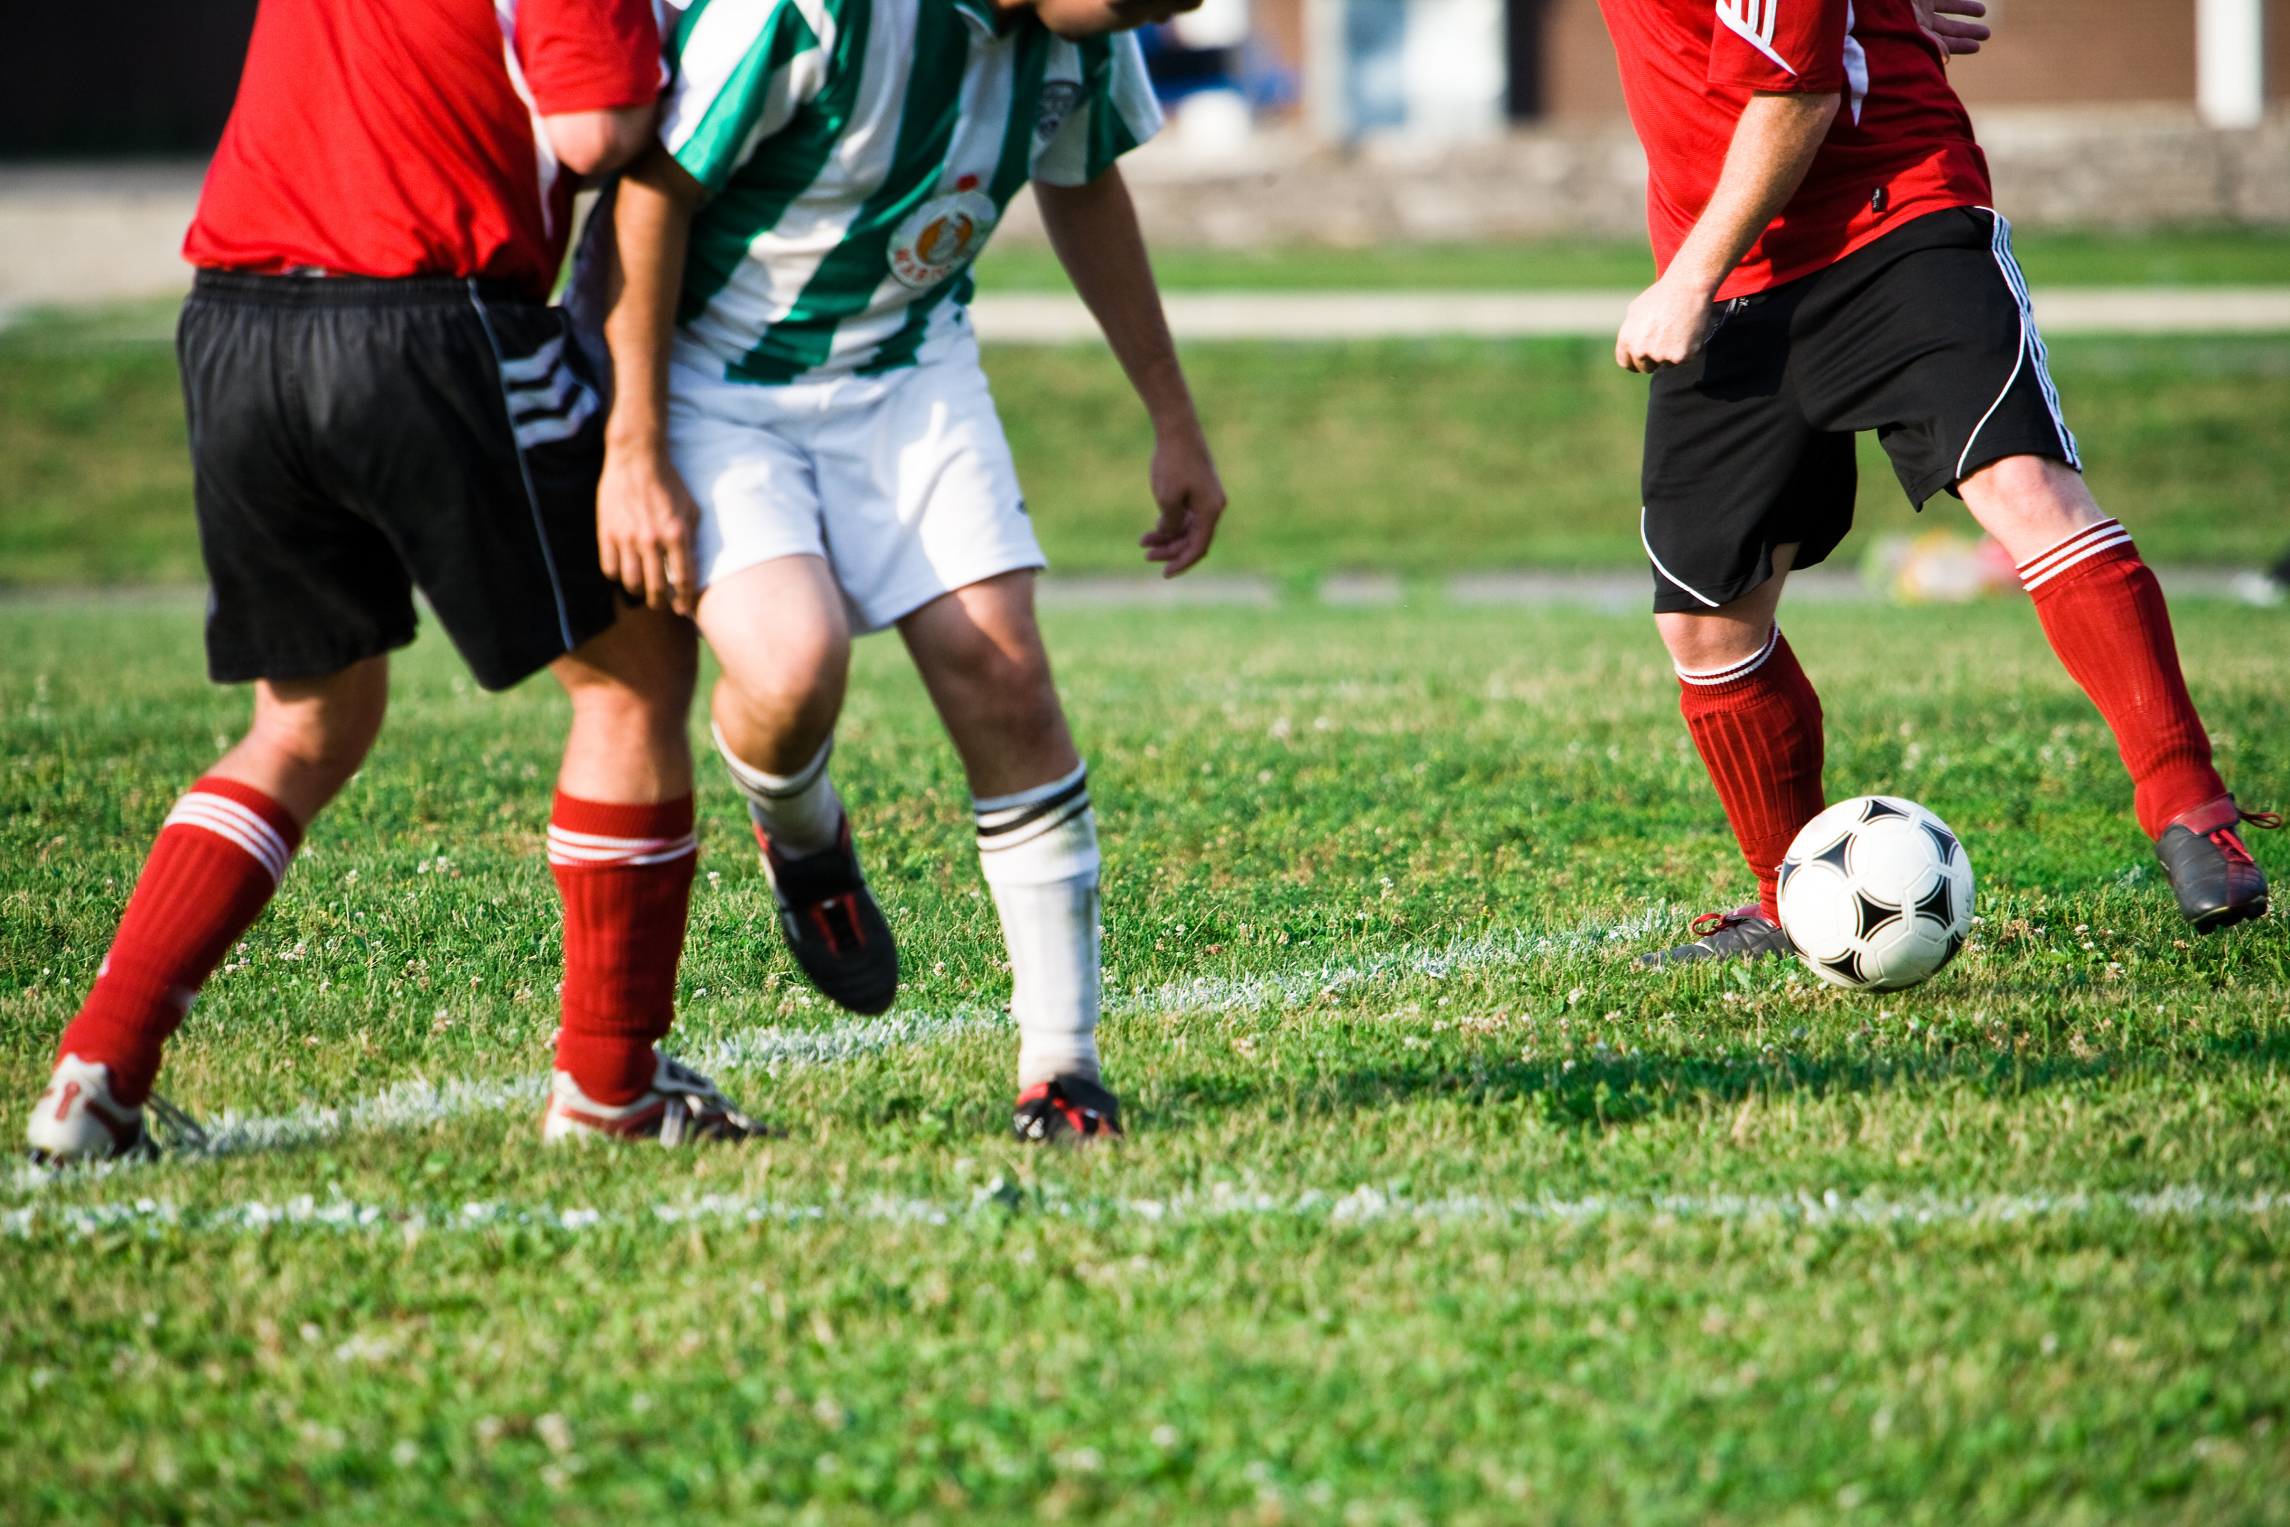 Watch How to Get in Shape for Soccer Tryouts video